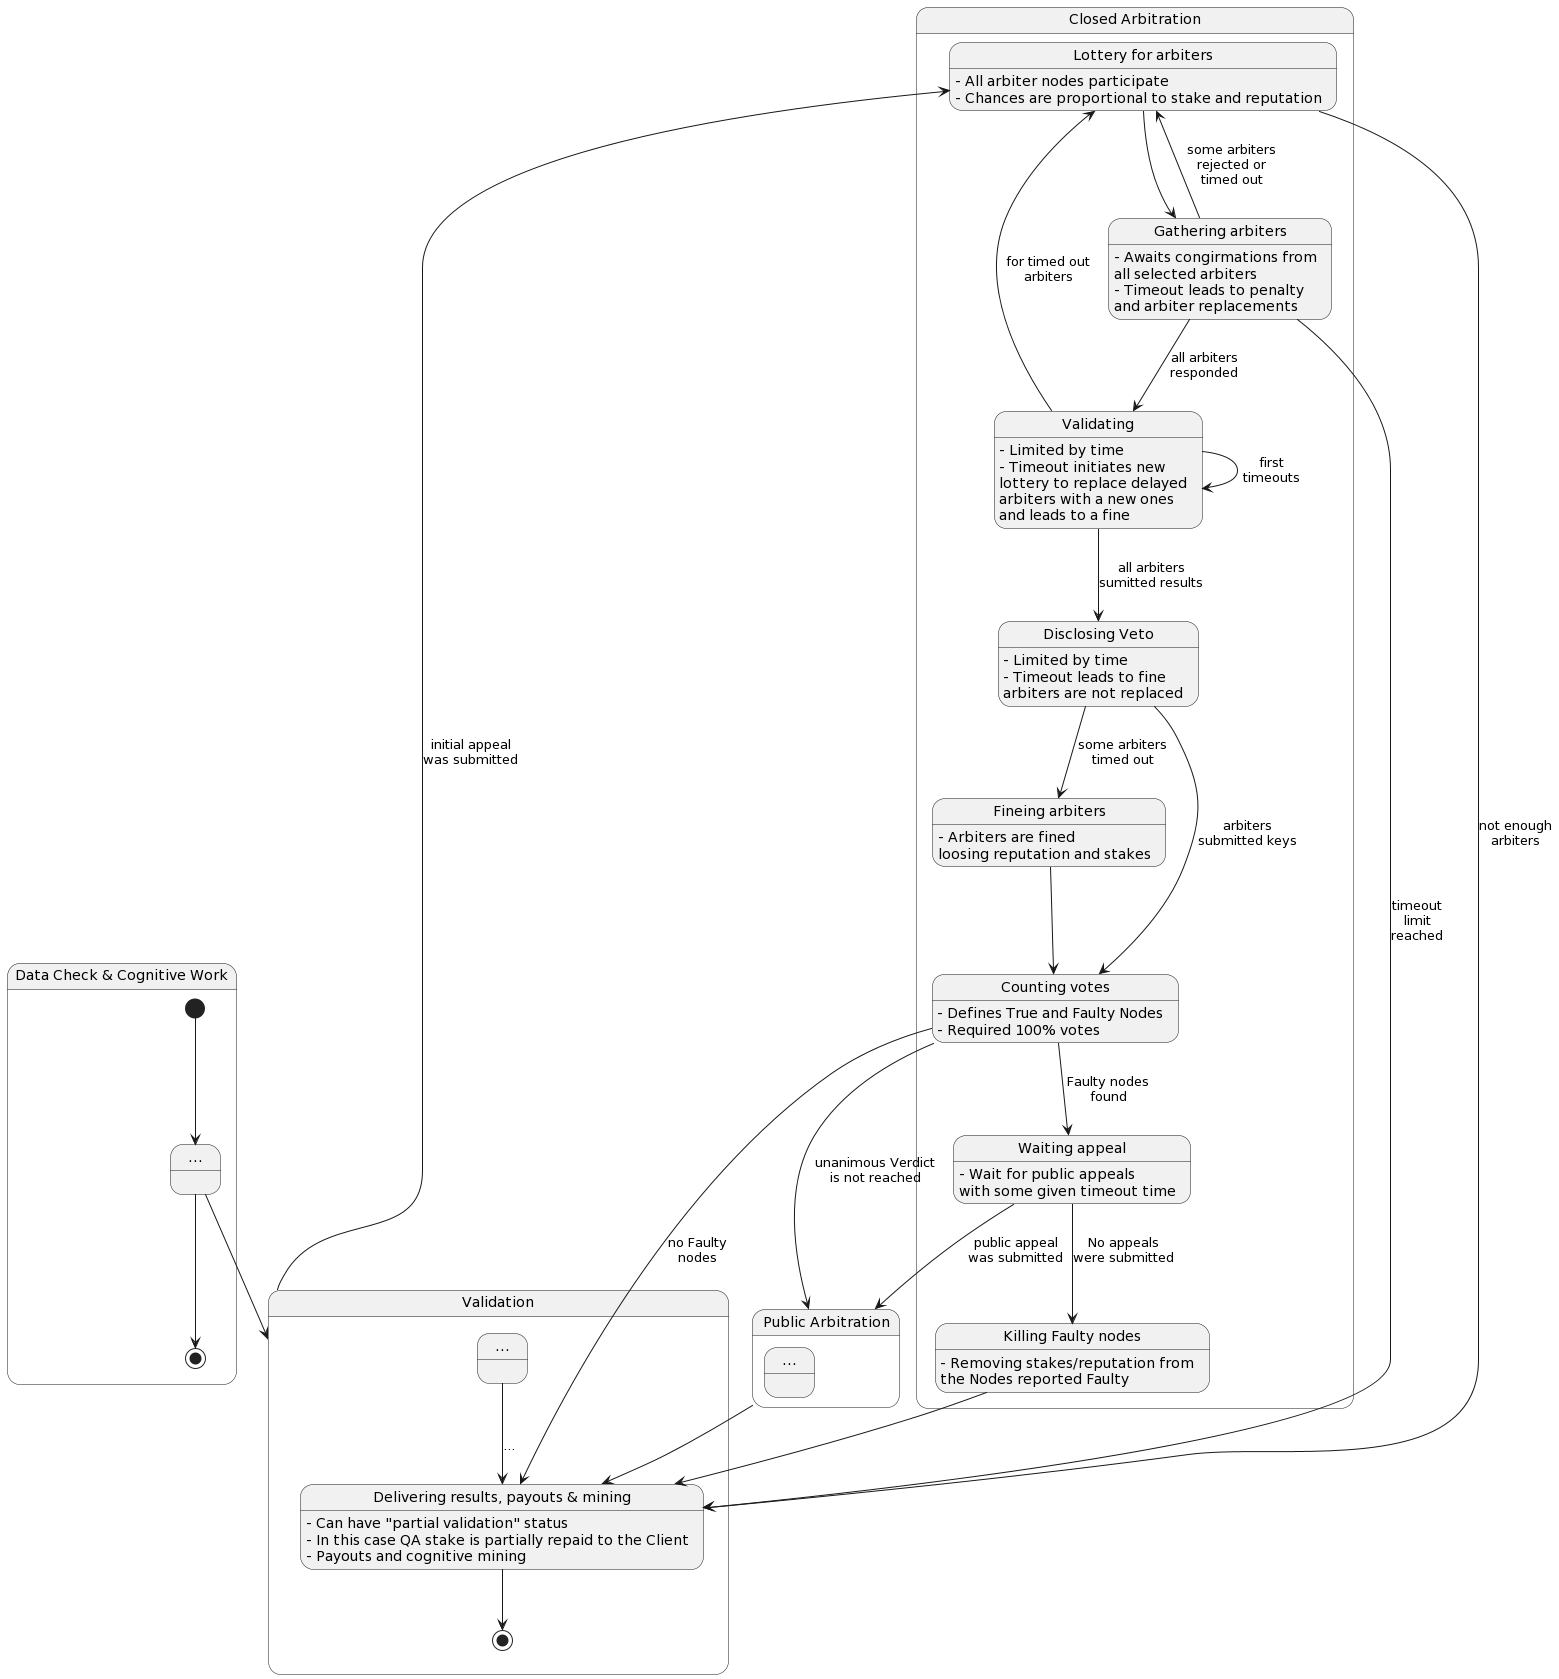 hight resolution of closed arbitration state diagram